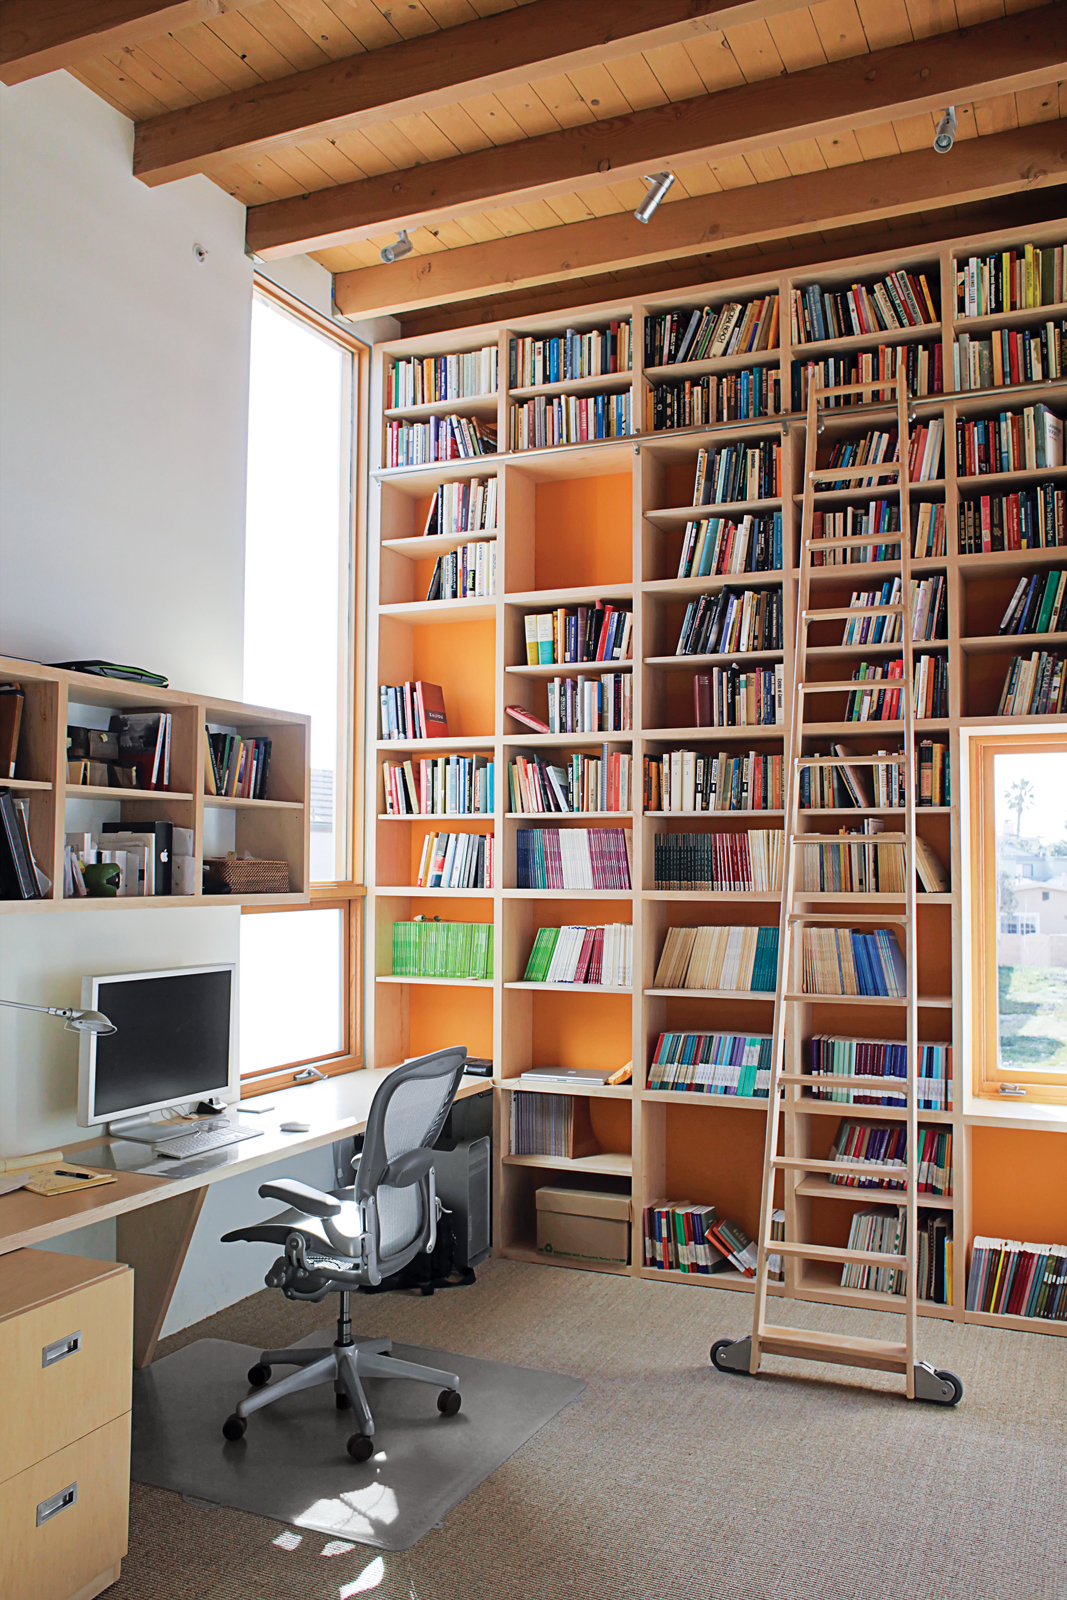 Dan Garness used paint and well-placed windows to keep Duane's office bright and airy.